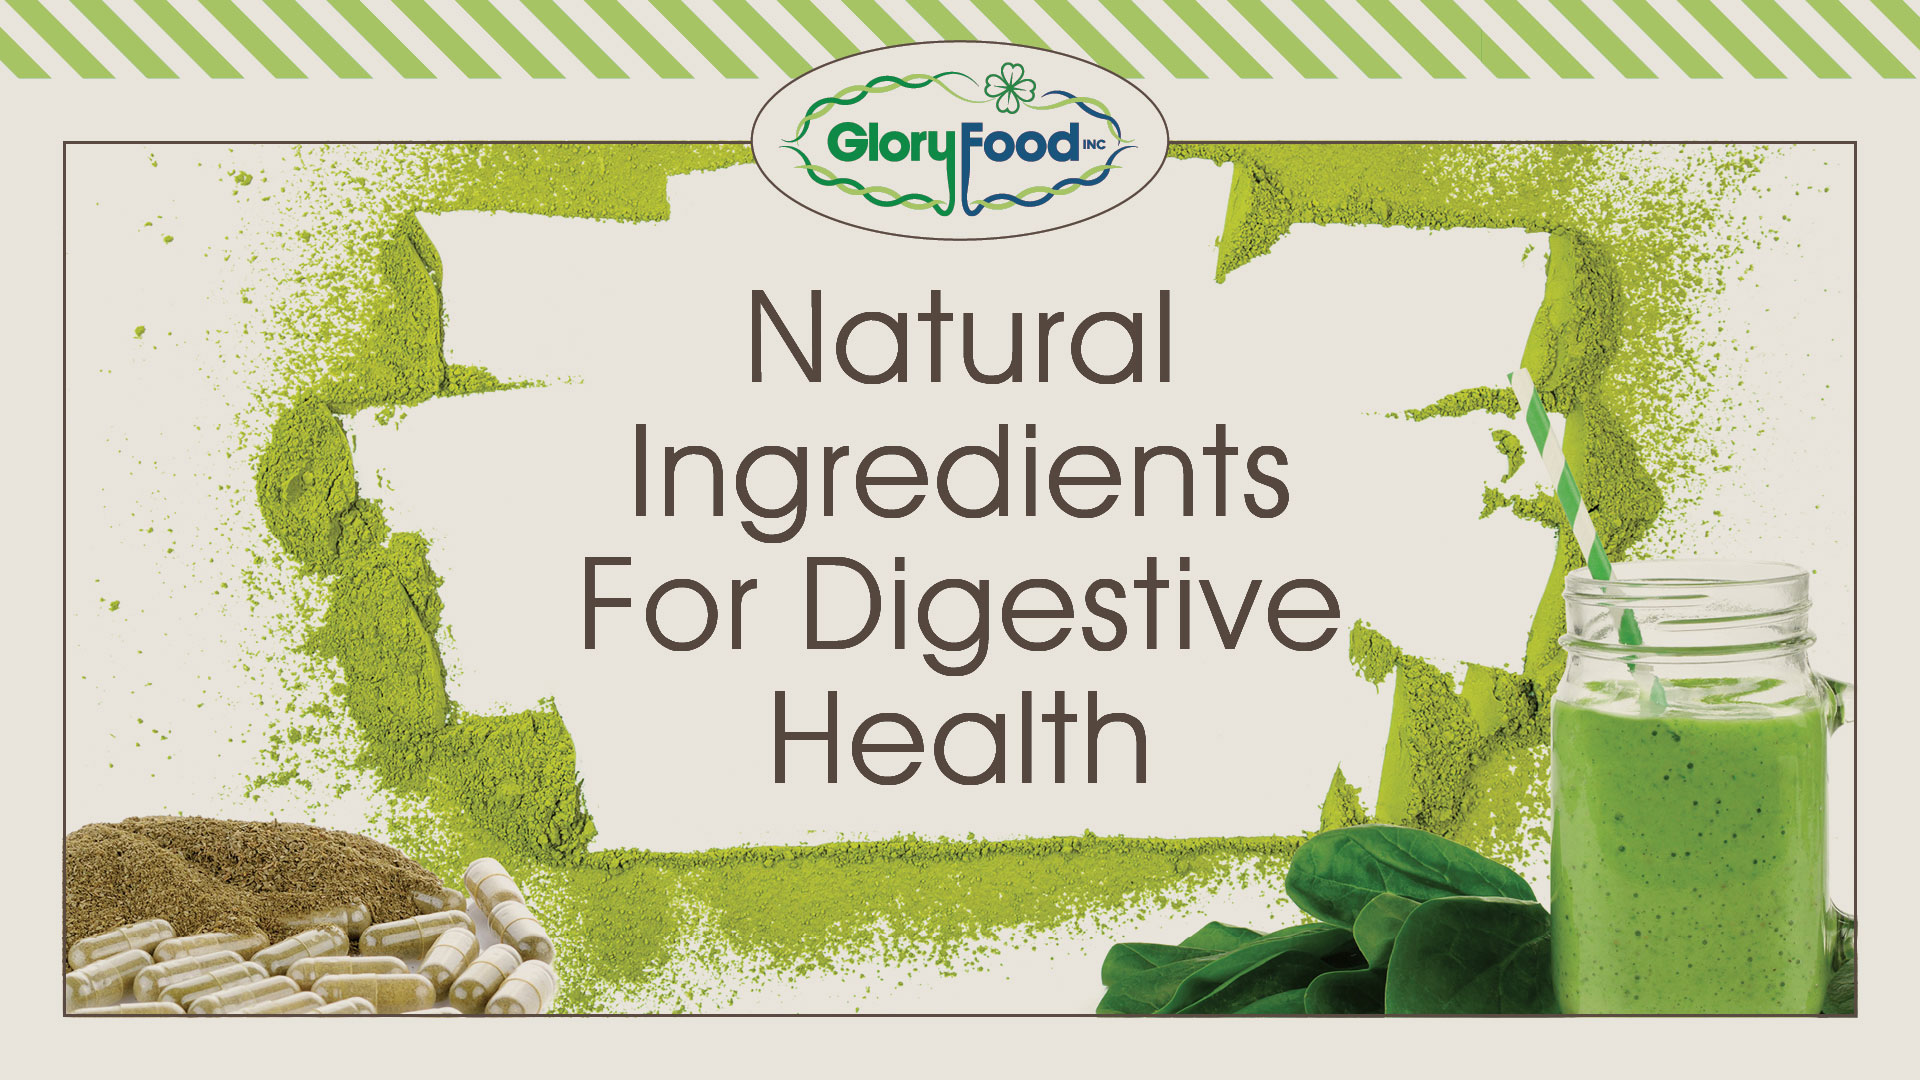 Ingredients for Digestive Health